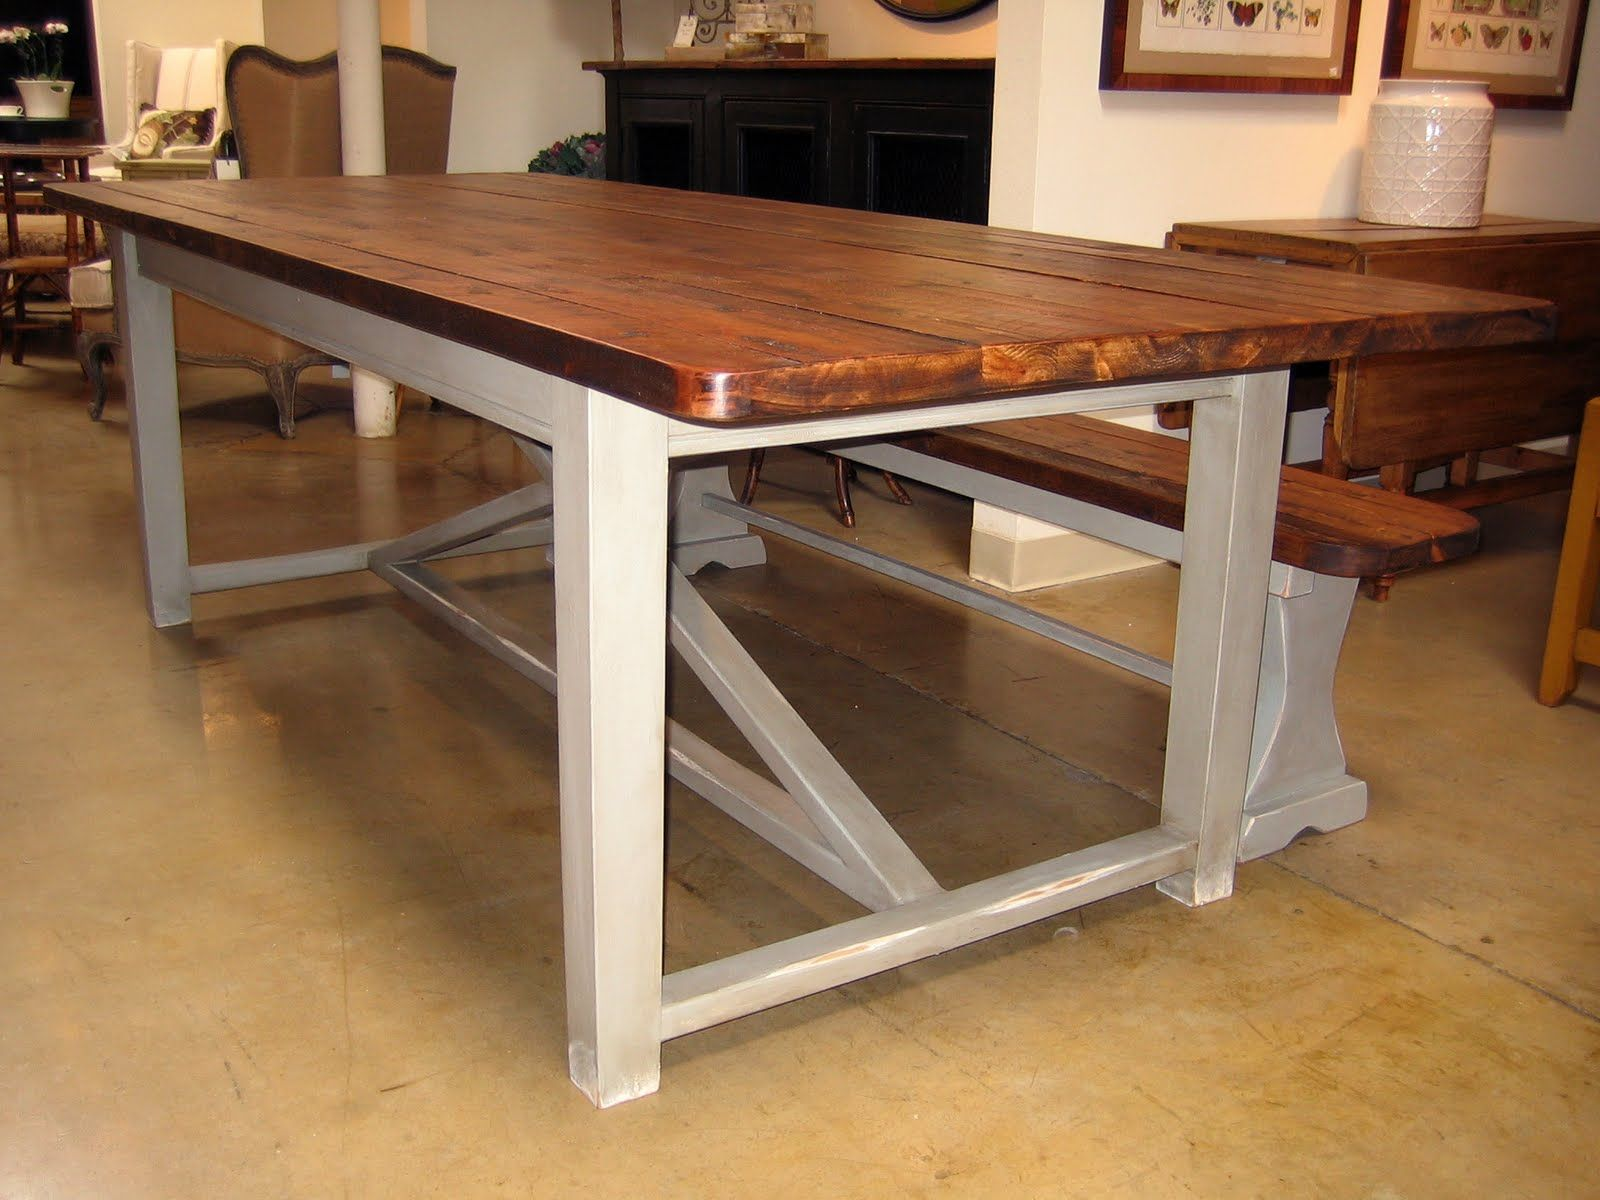 Wondrous Rectangle Dining Farm House Table With Benches Added White  Polished Legs In Opened Floors Interior Decors